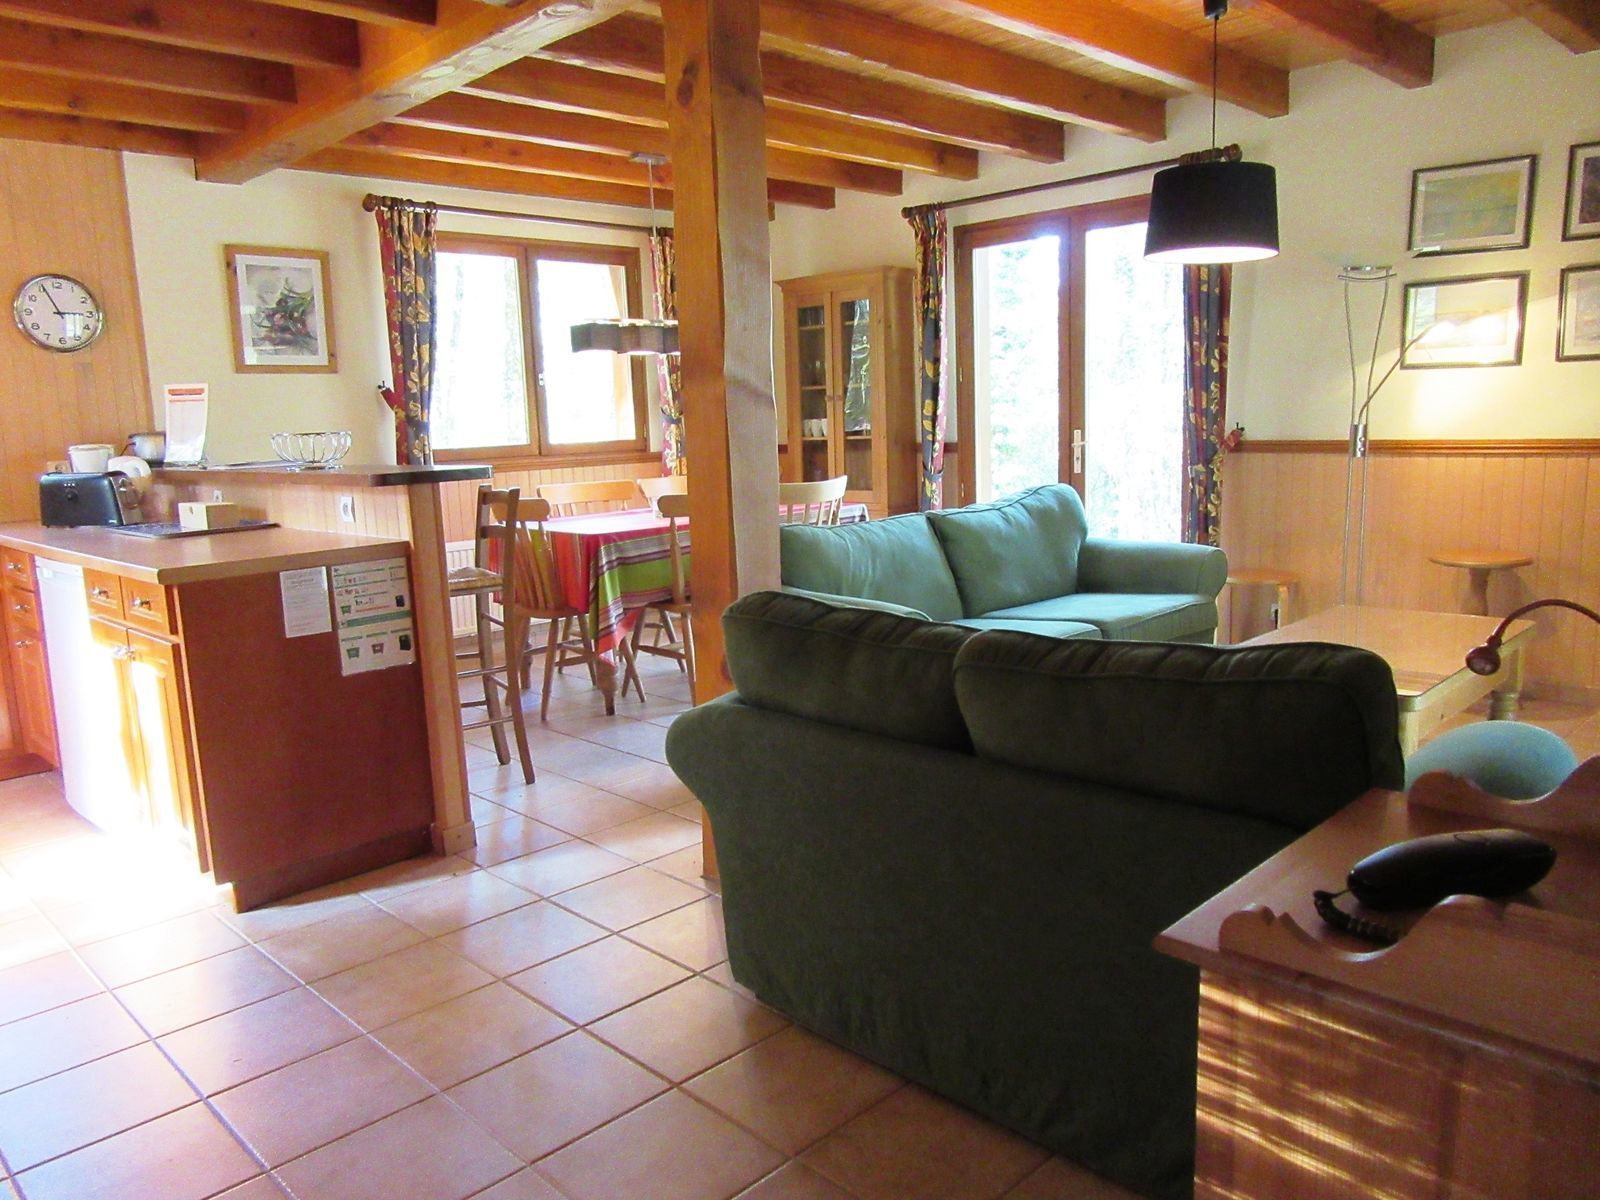 Souillac Country Club - vakantiewoning Corrèze Confort in Dordogne